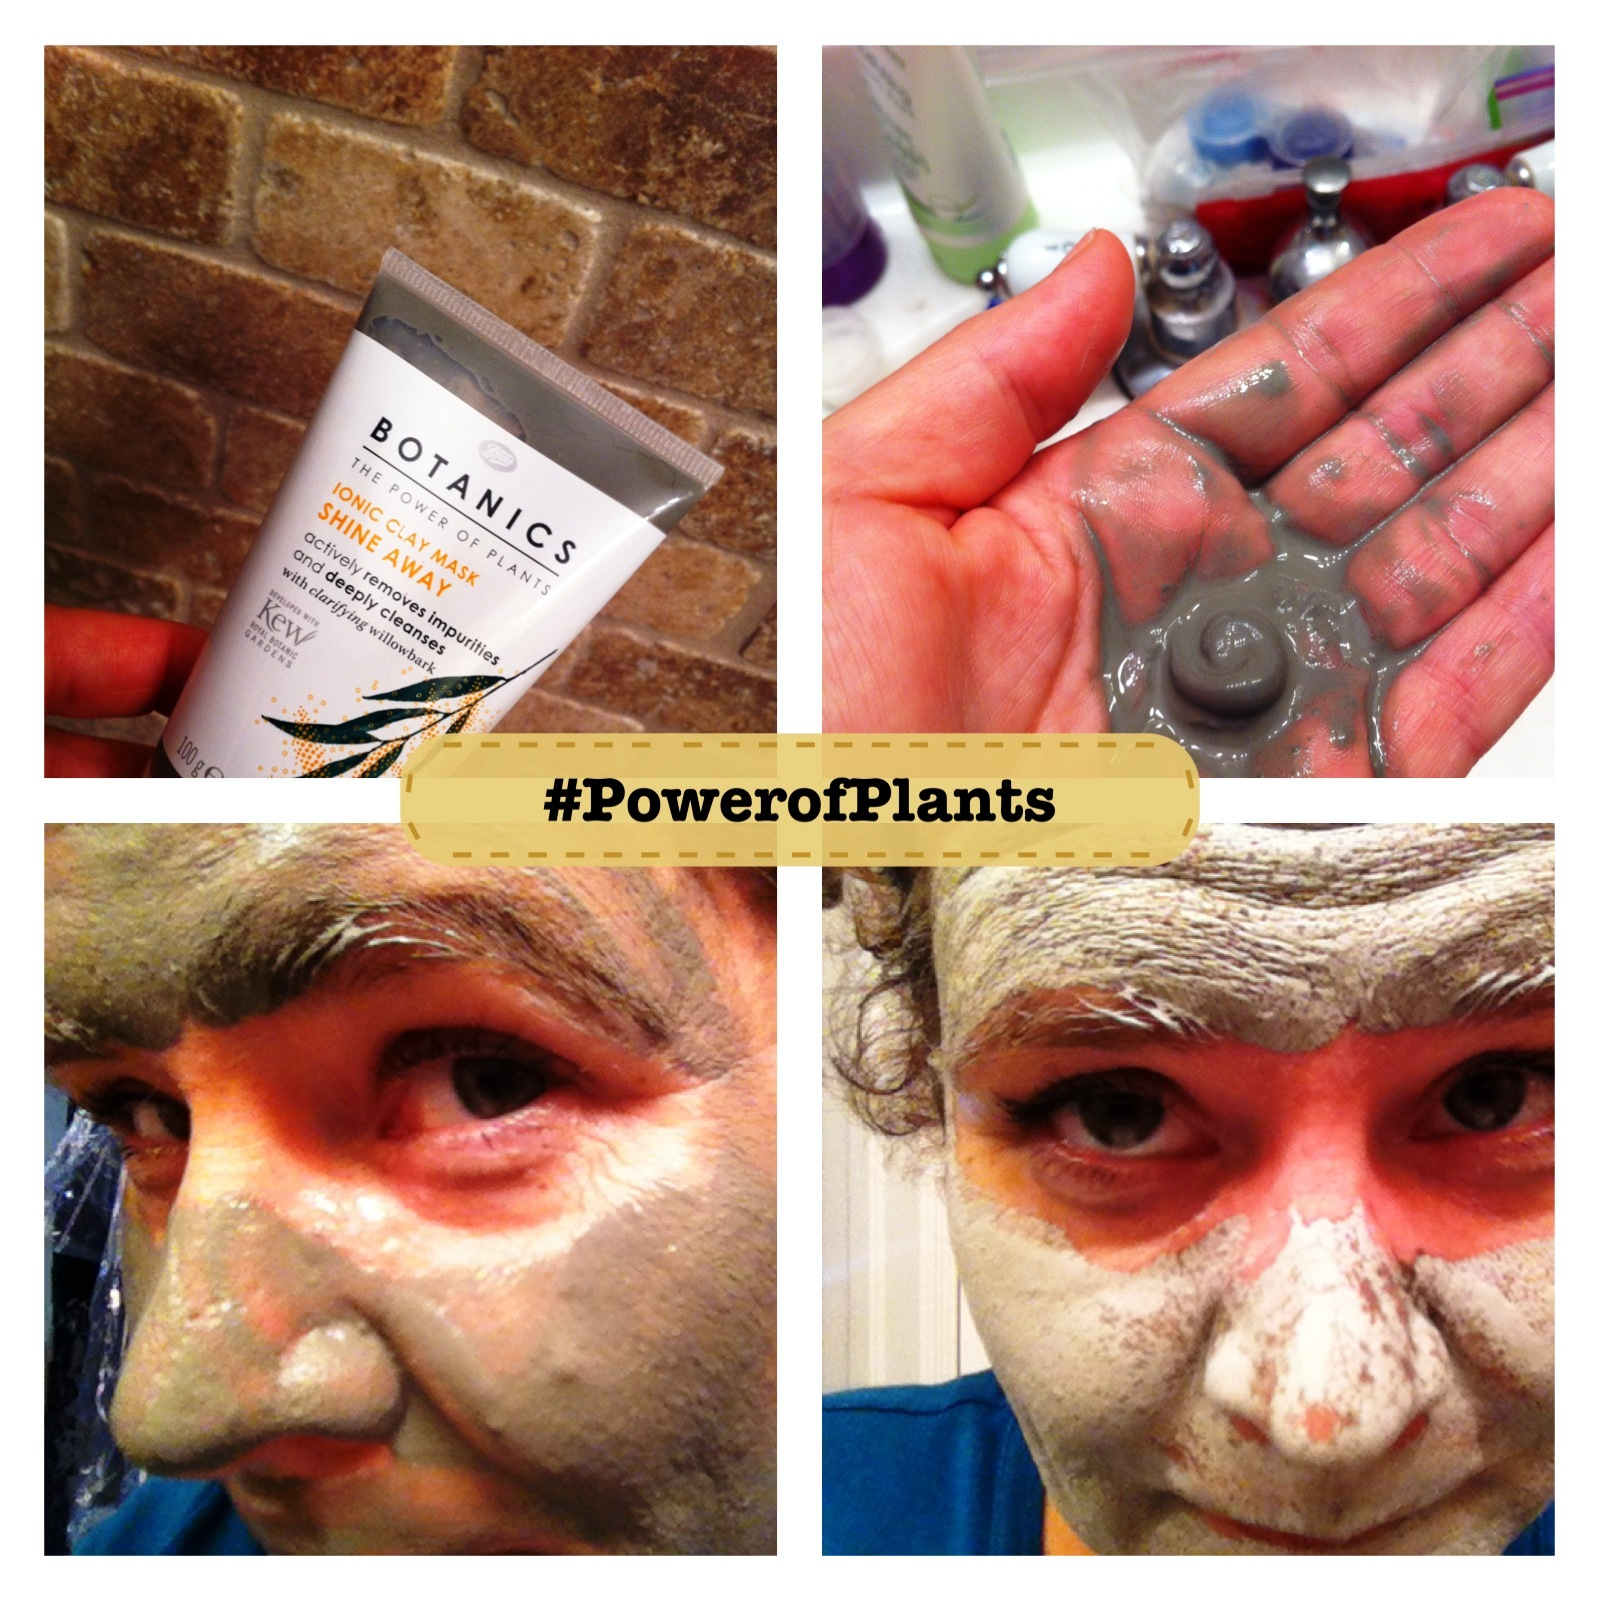 You Can Play in the Clay, Too #PowerofPlants